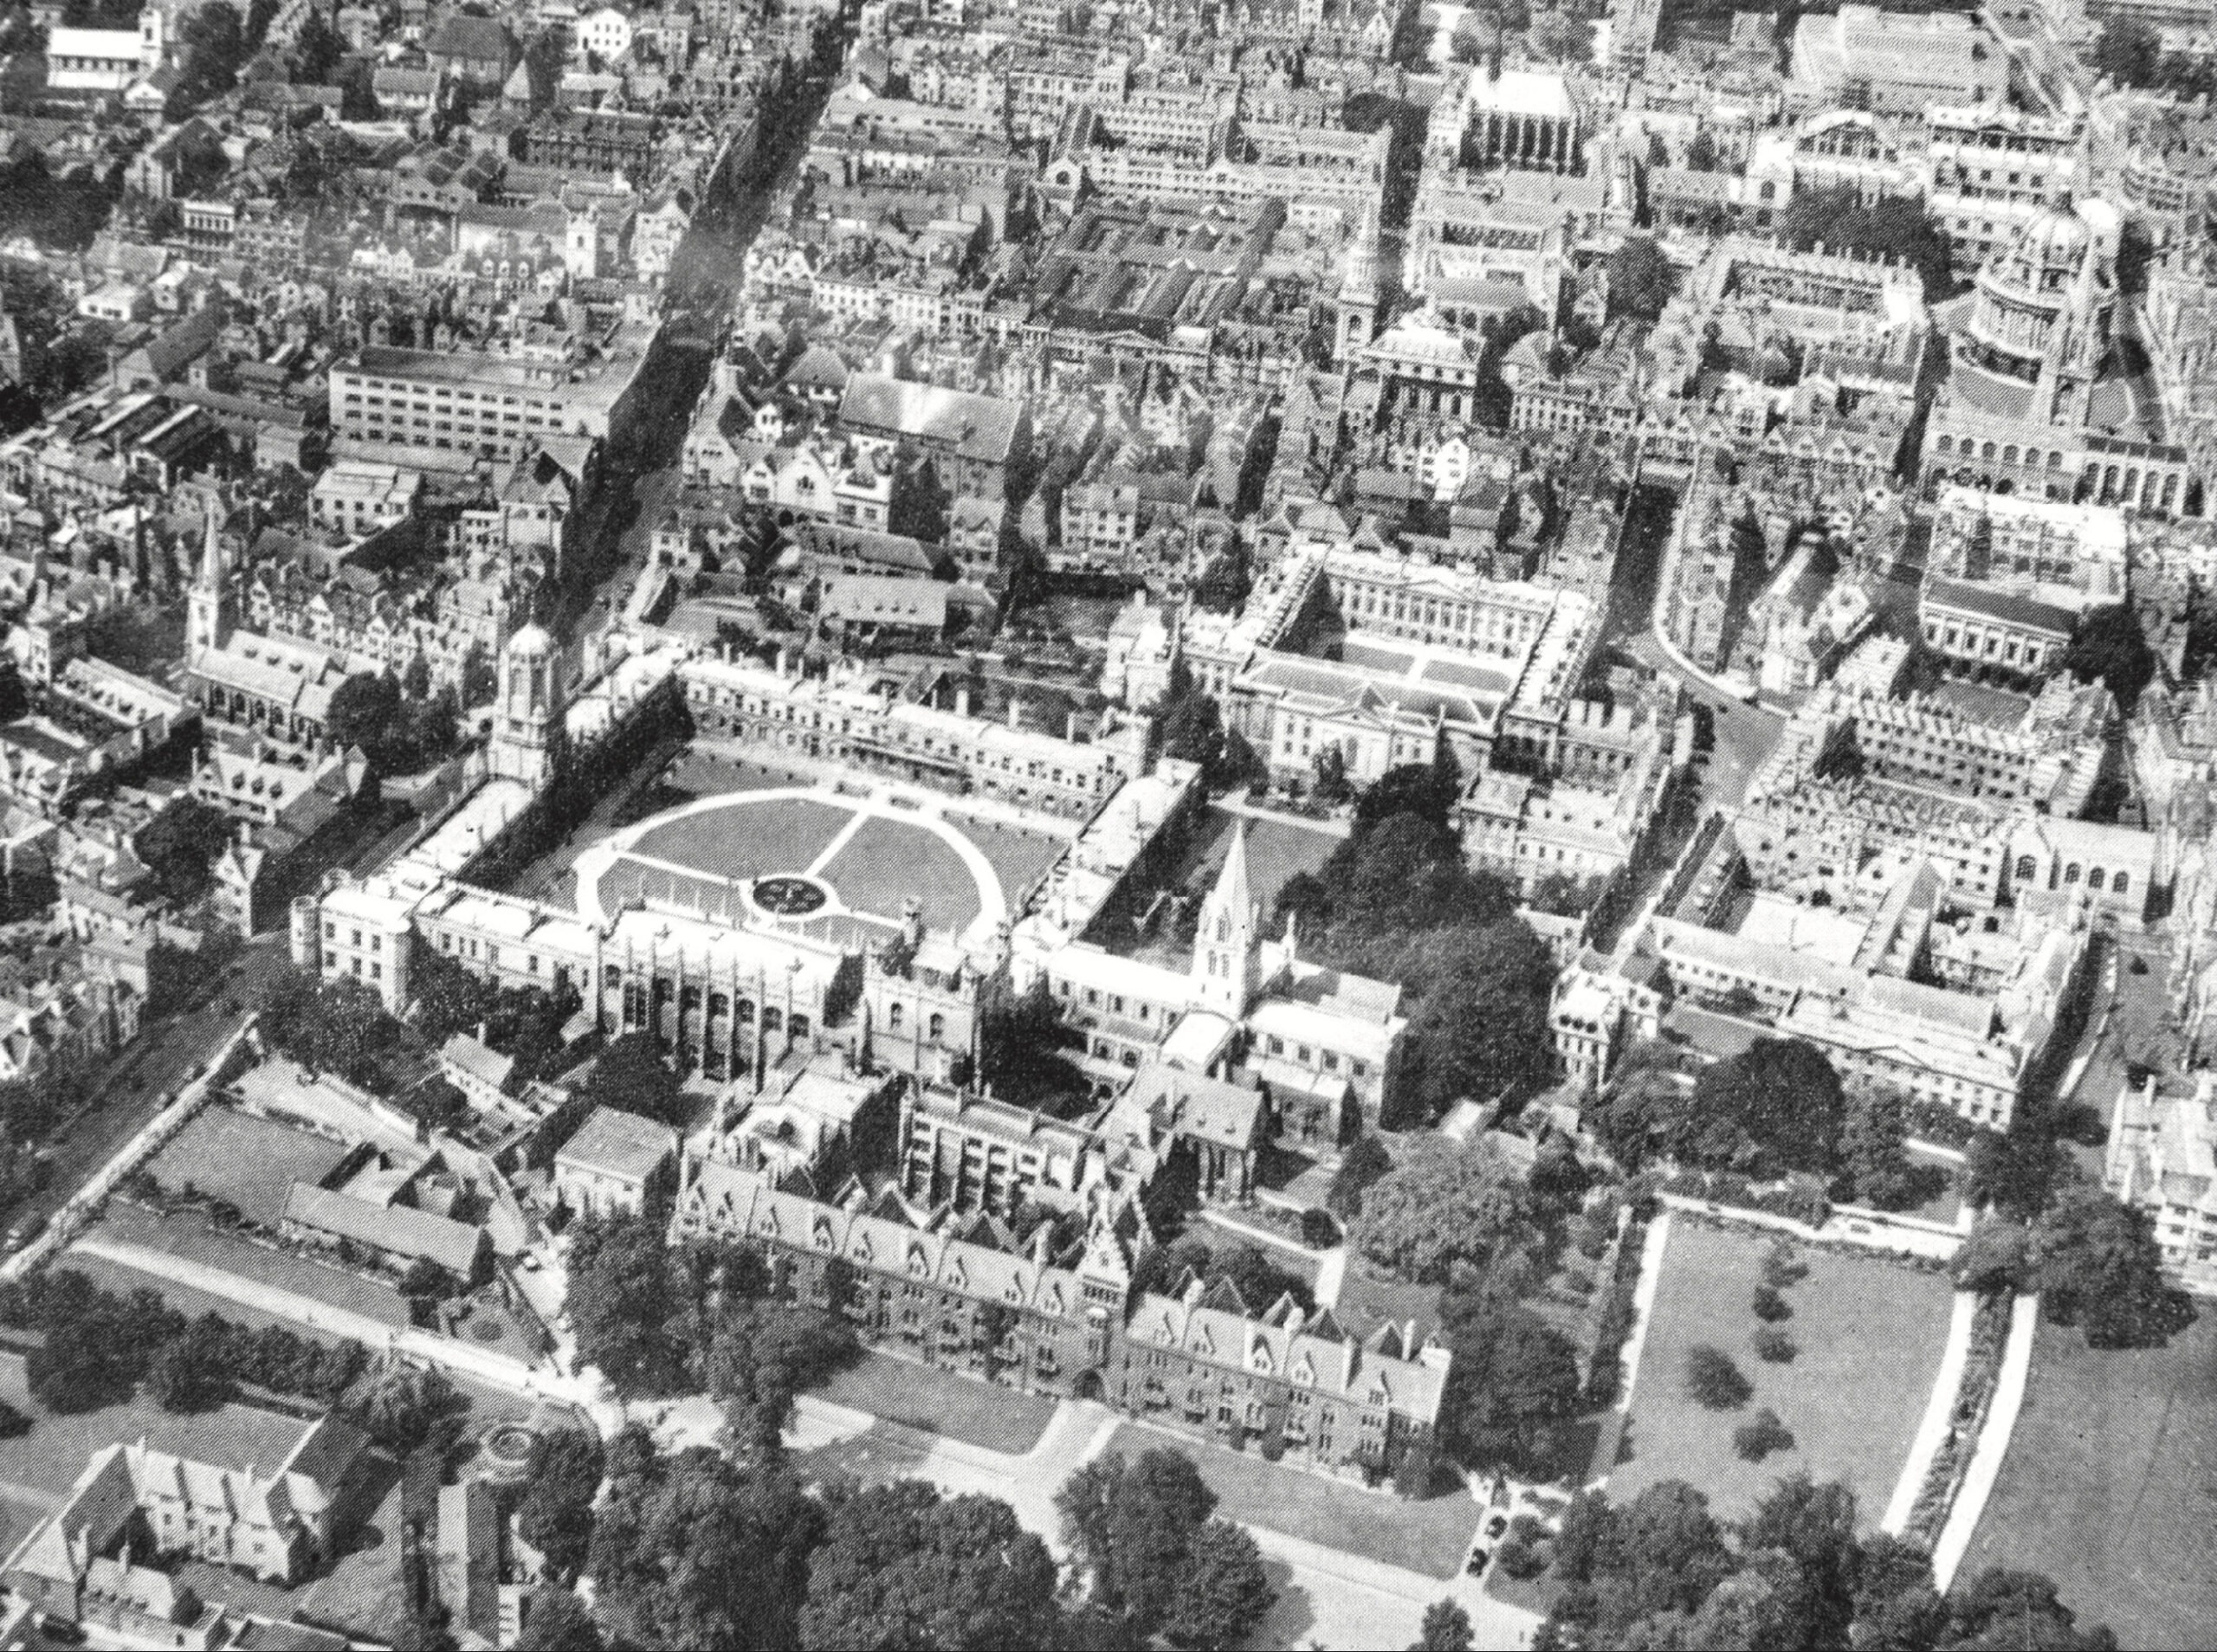 The Great Quadrangle of Christ Church at the University of Oxford, viewed from above.